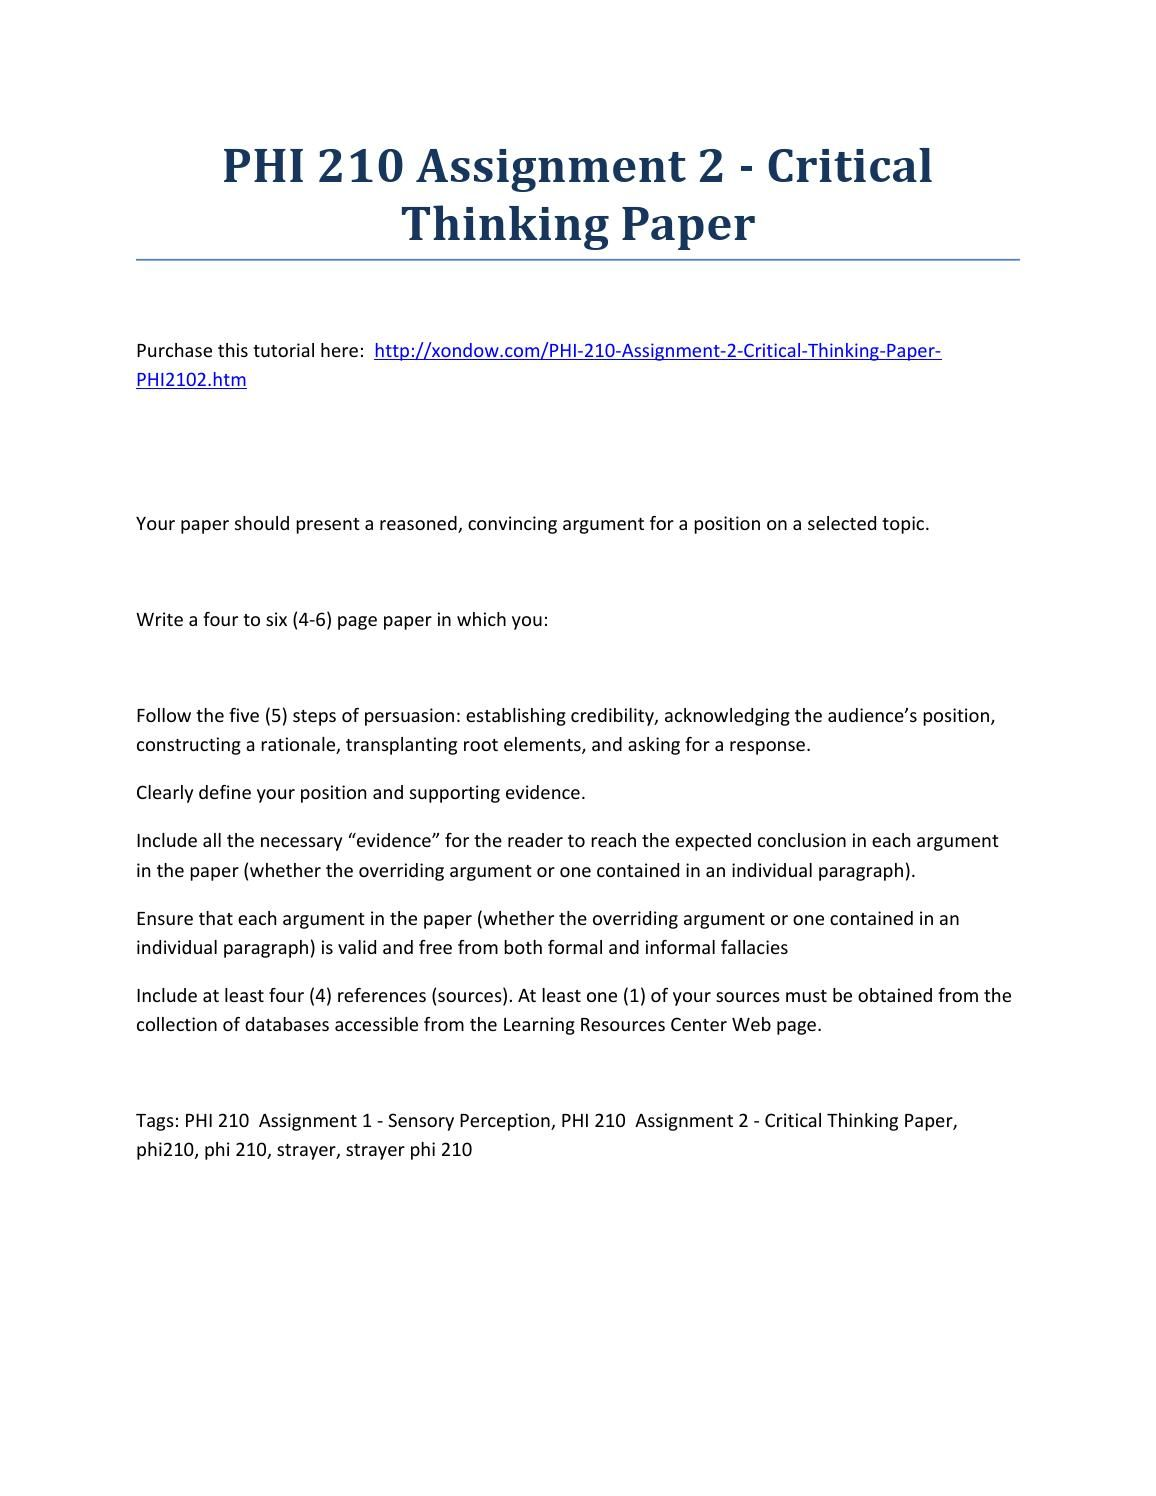 critical thinking paper 2 revision